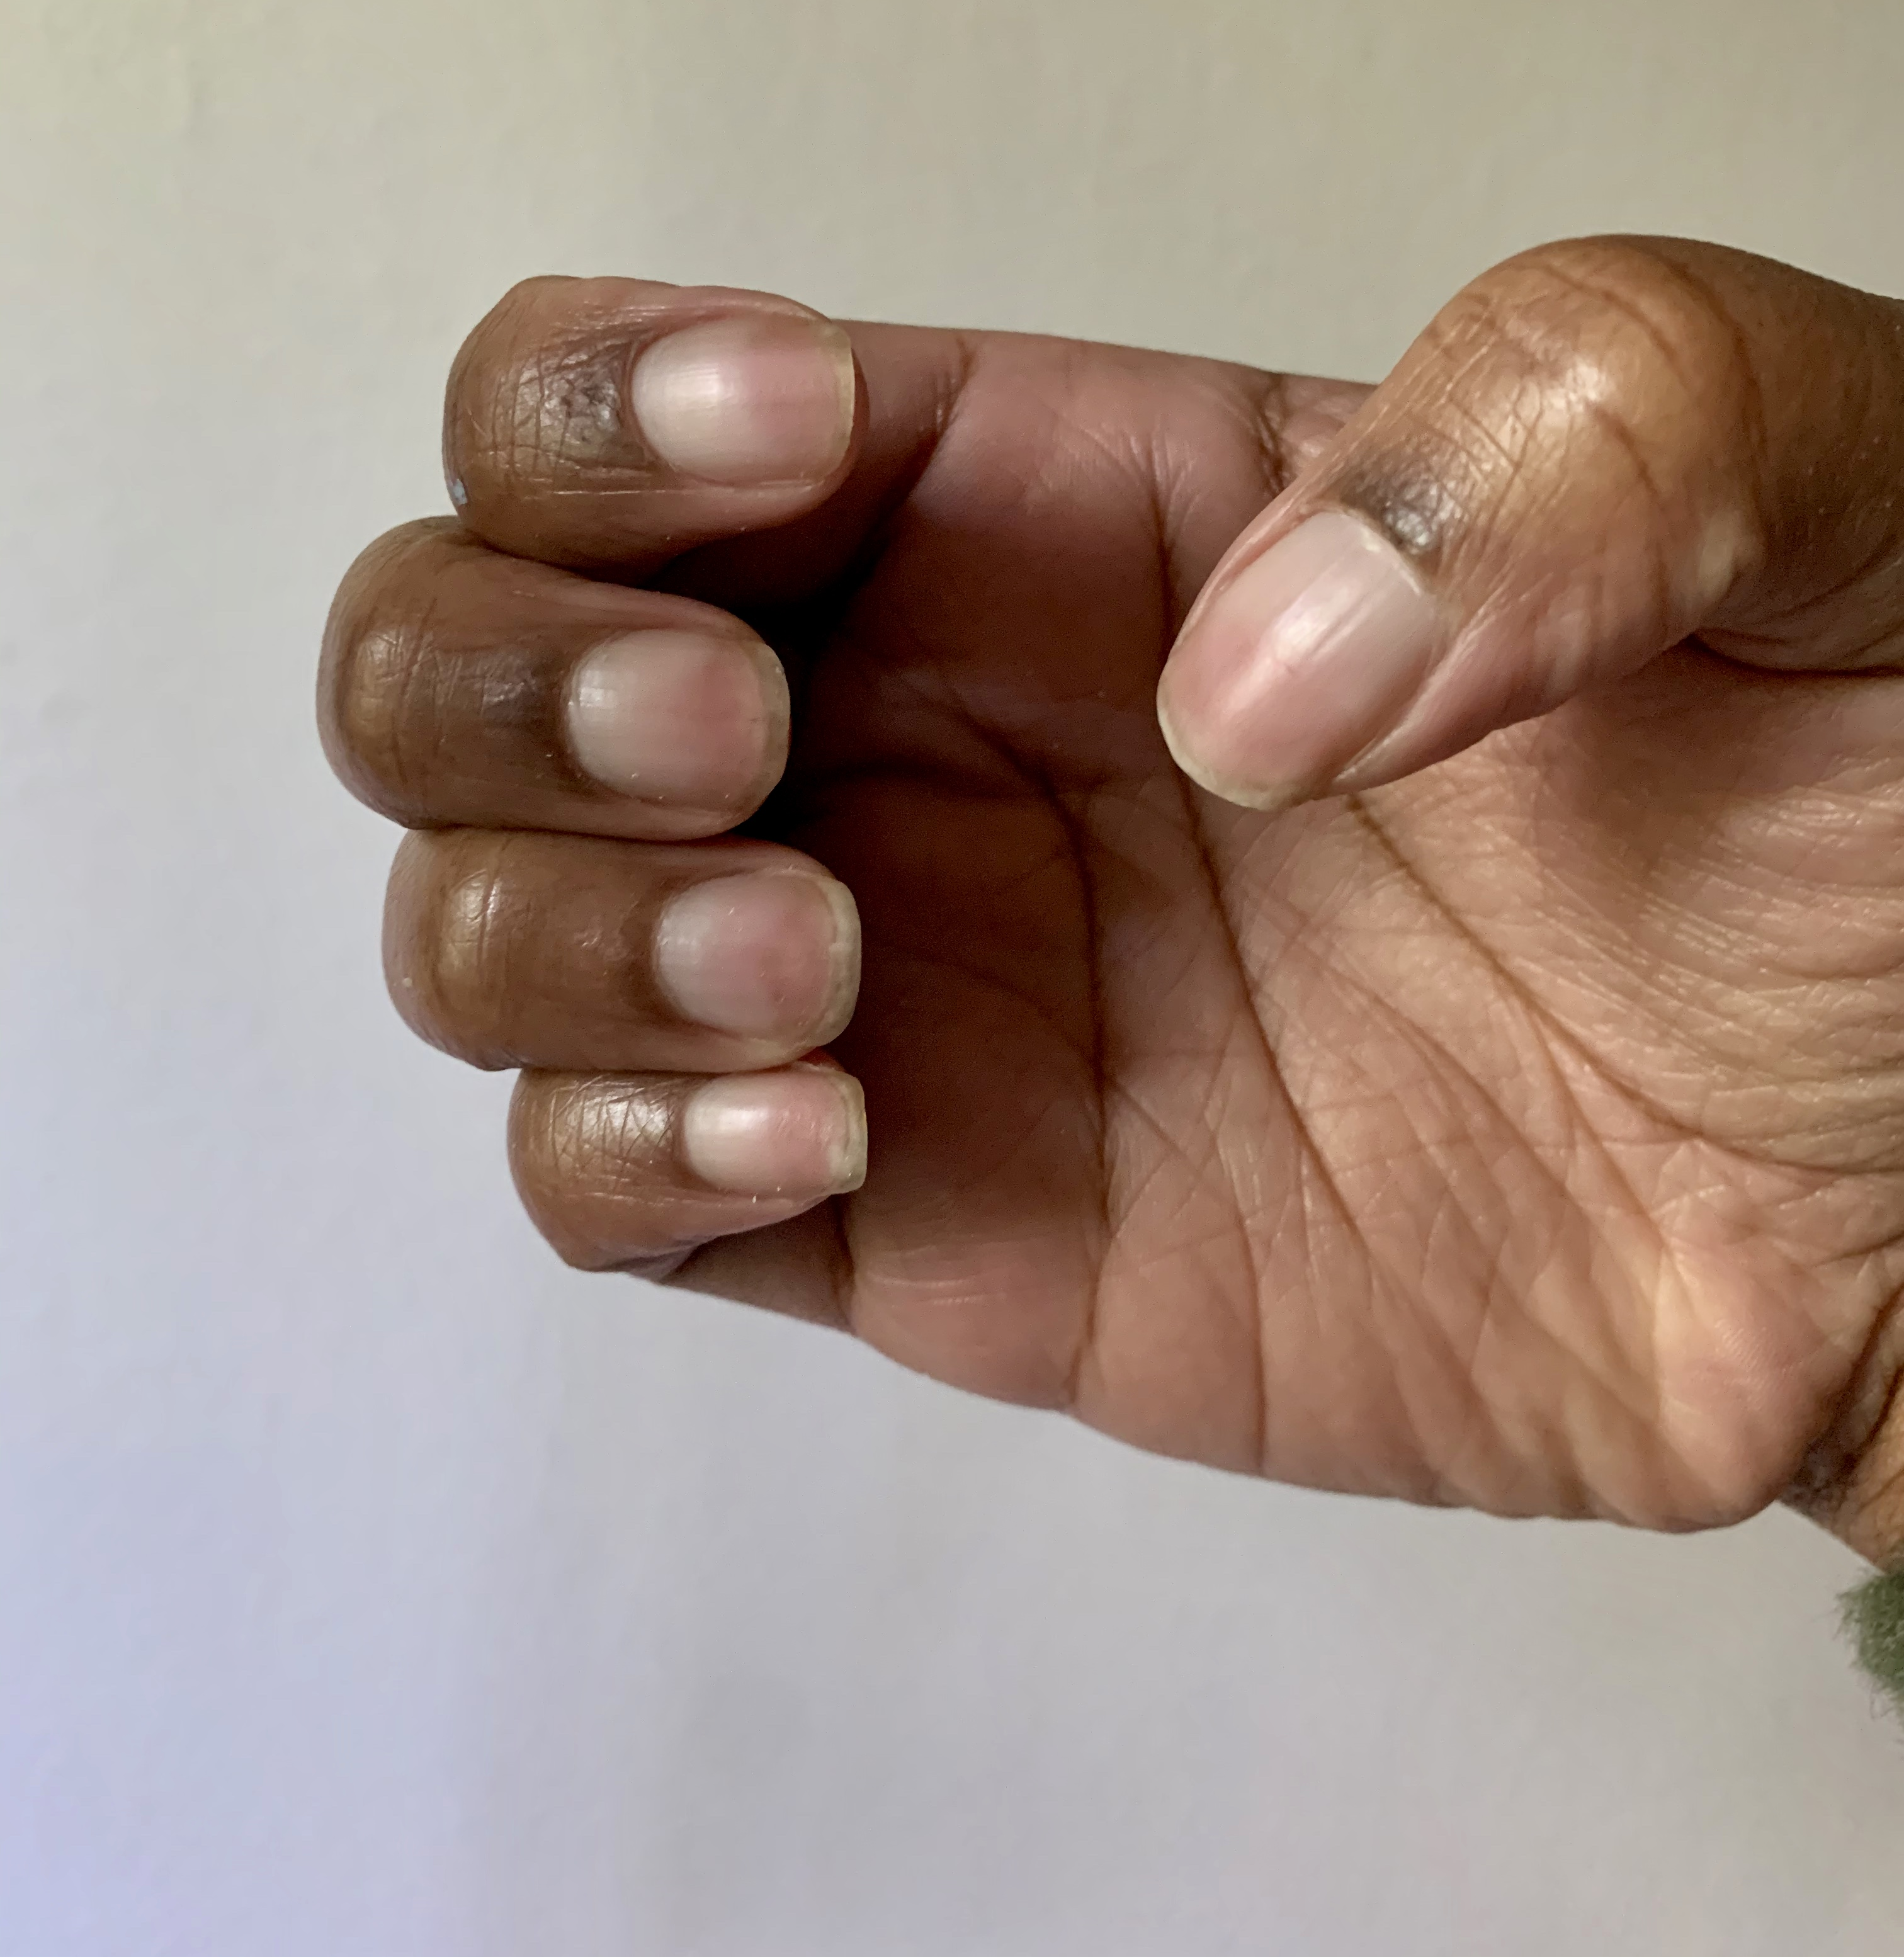 Before and After nail images